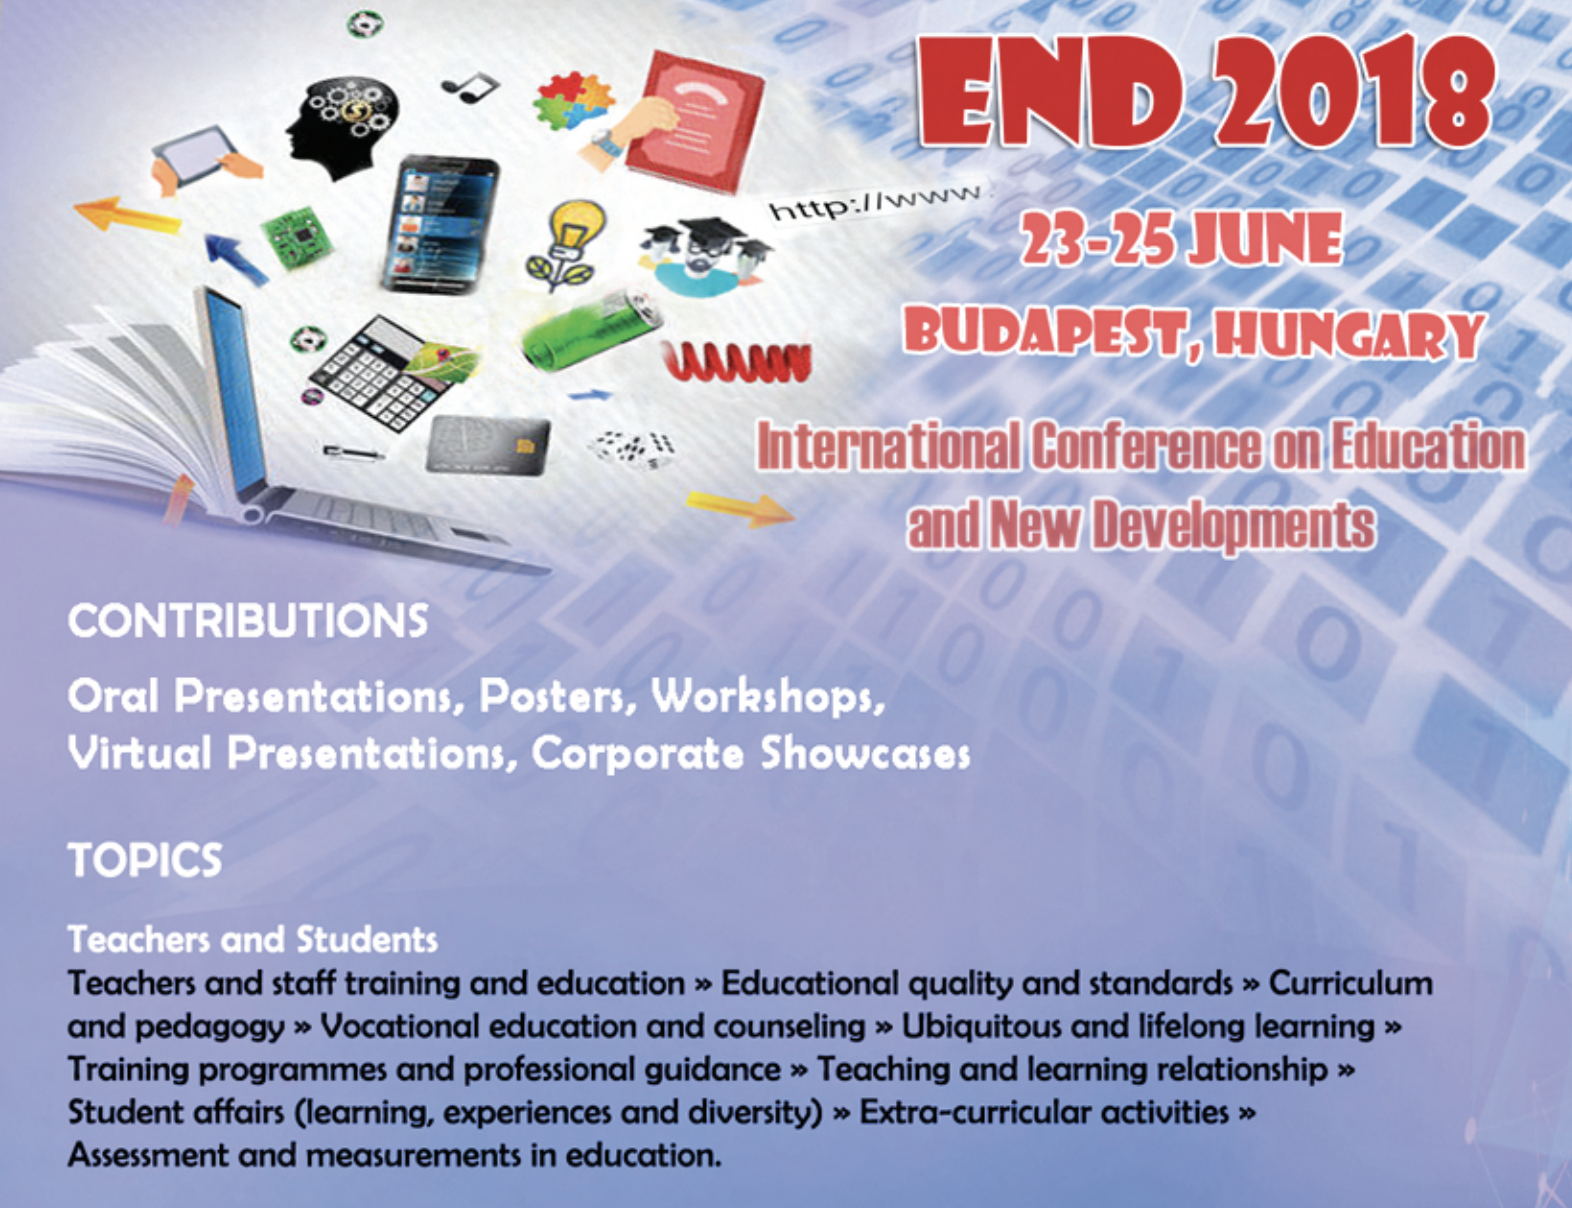 END 2018 Conference, Budapest